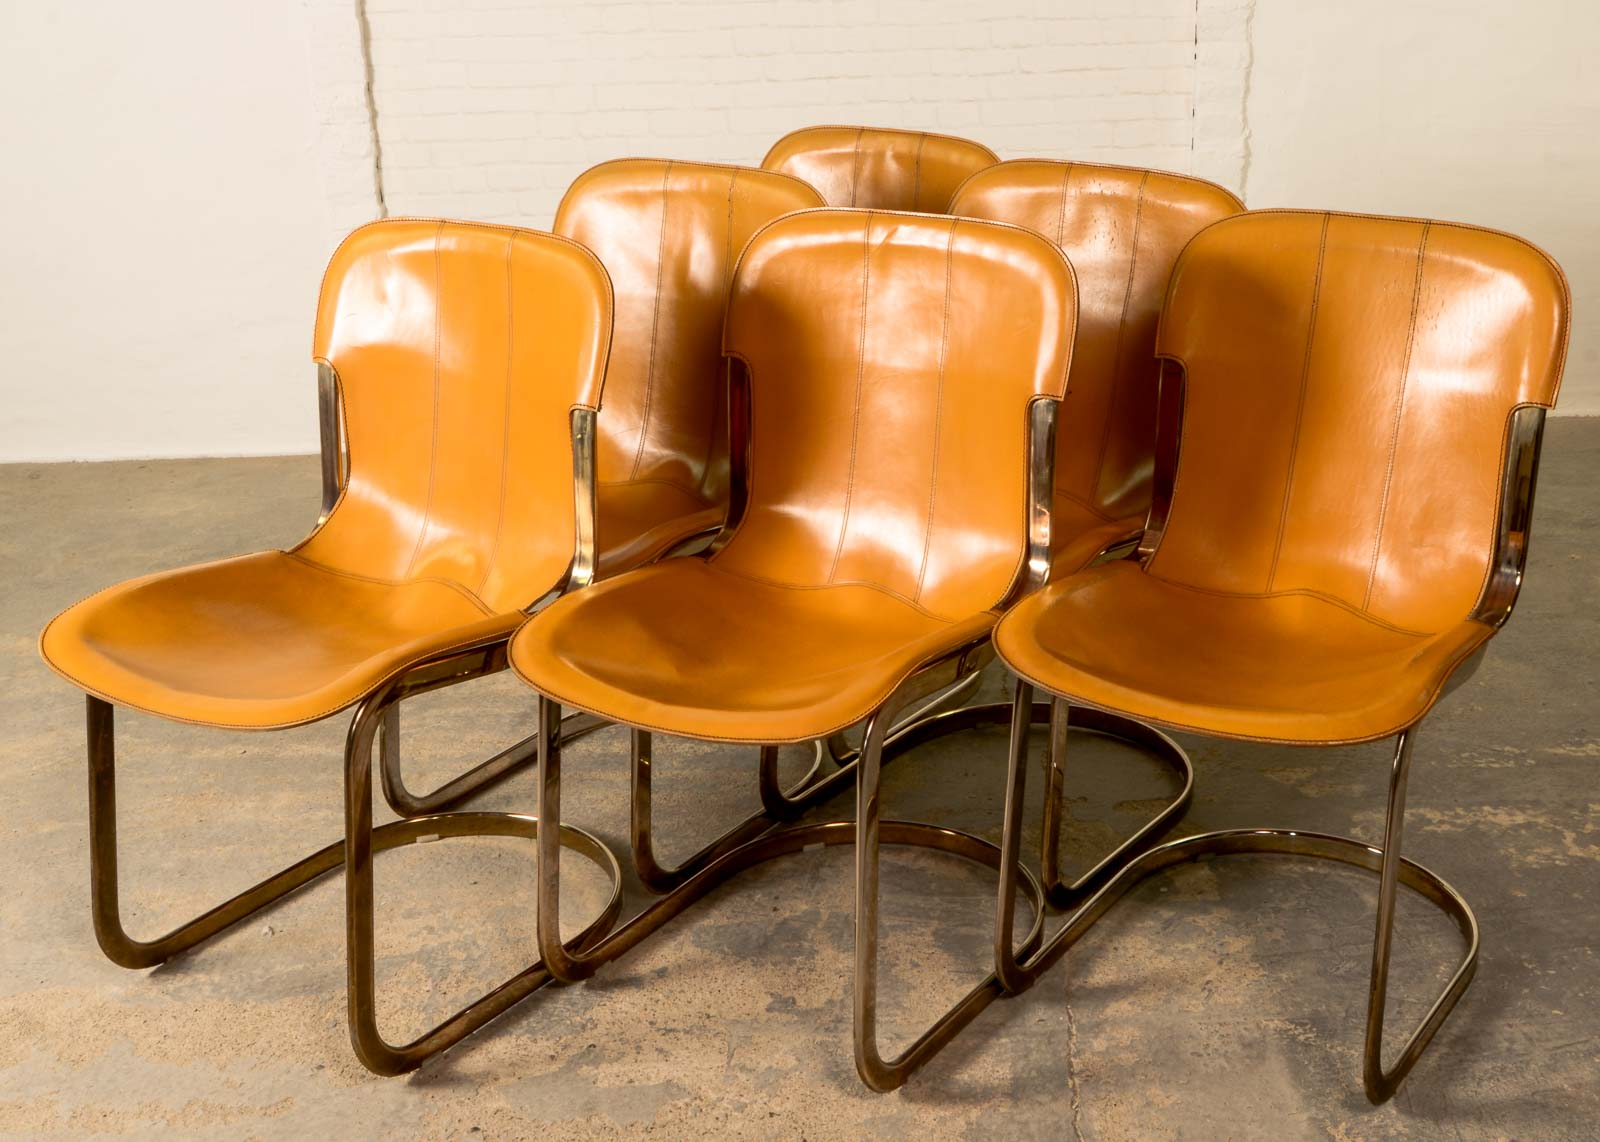 MidCentury Leather Brass Dining Chairs by Willy Rizzo for Cidue